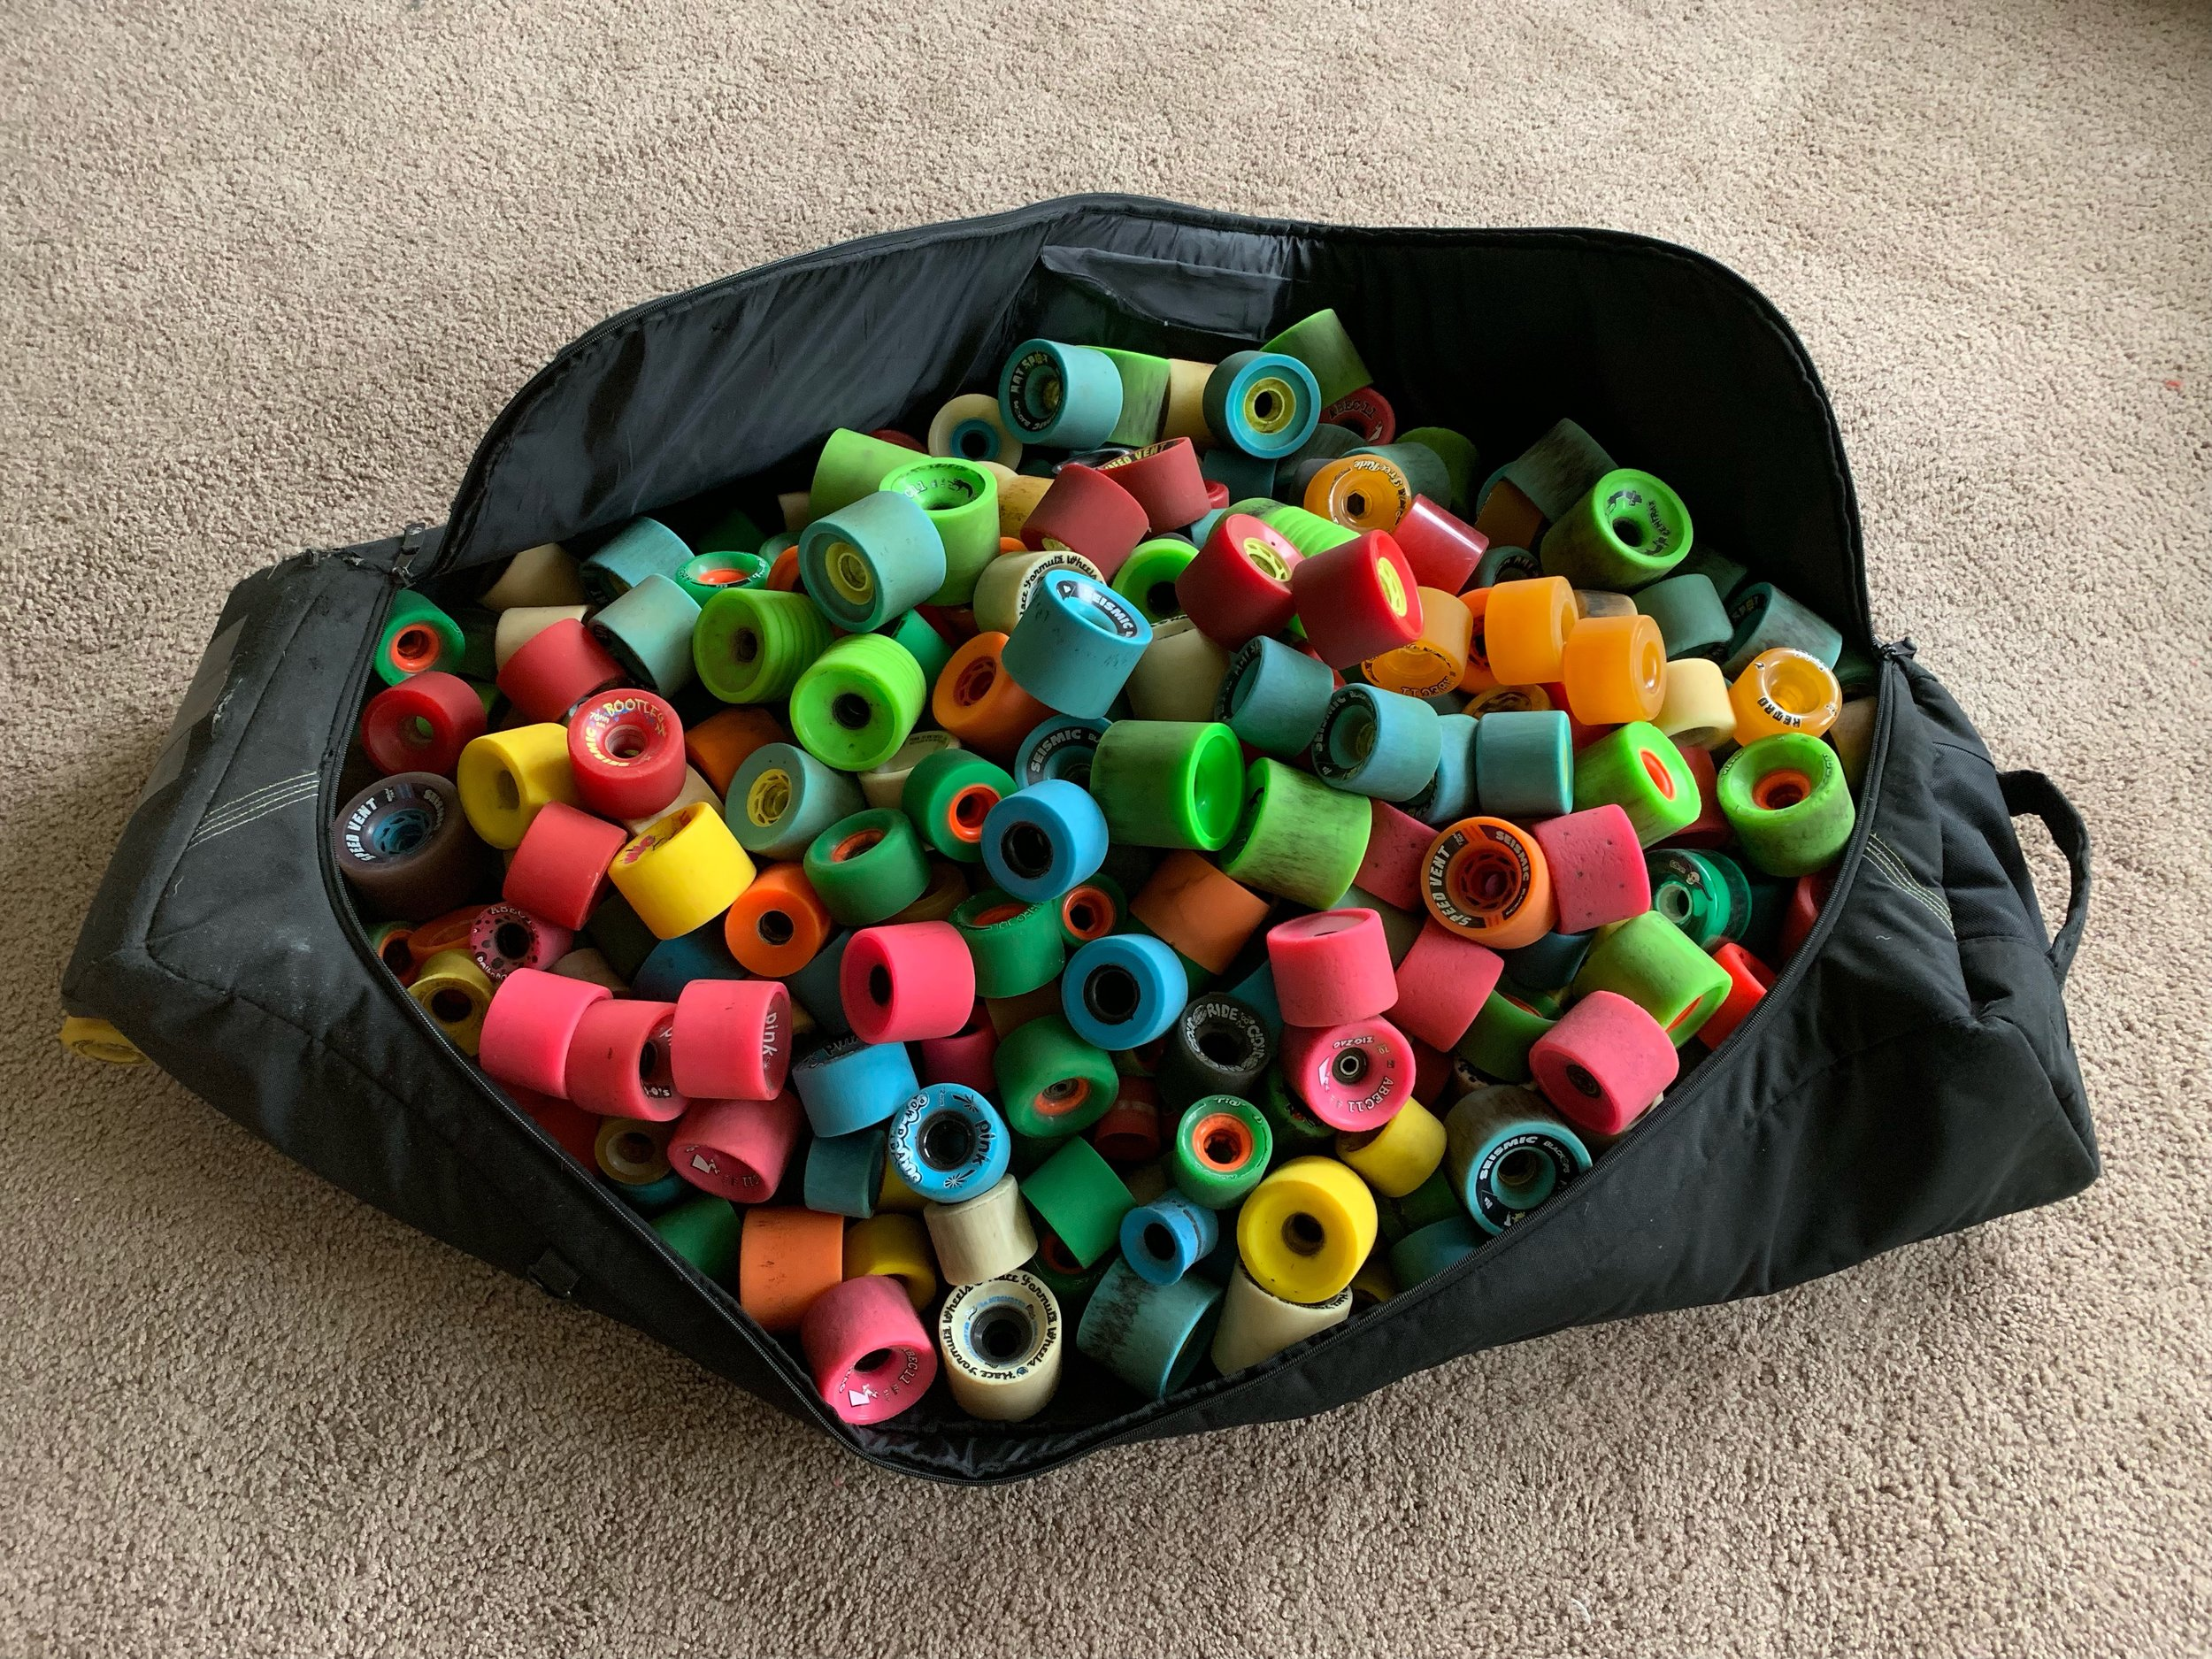 100+ sets of longboard wheels from the stash.